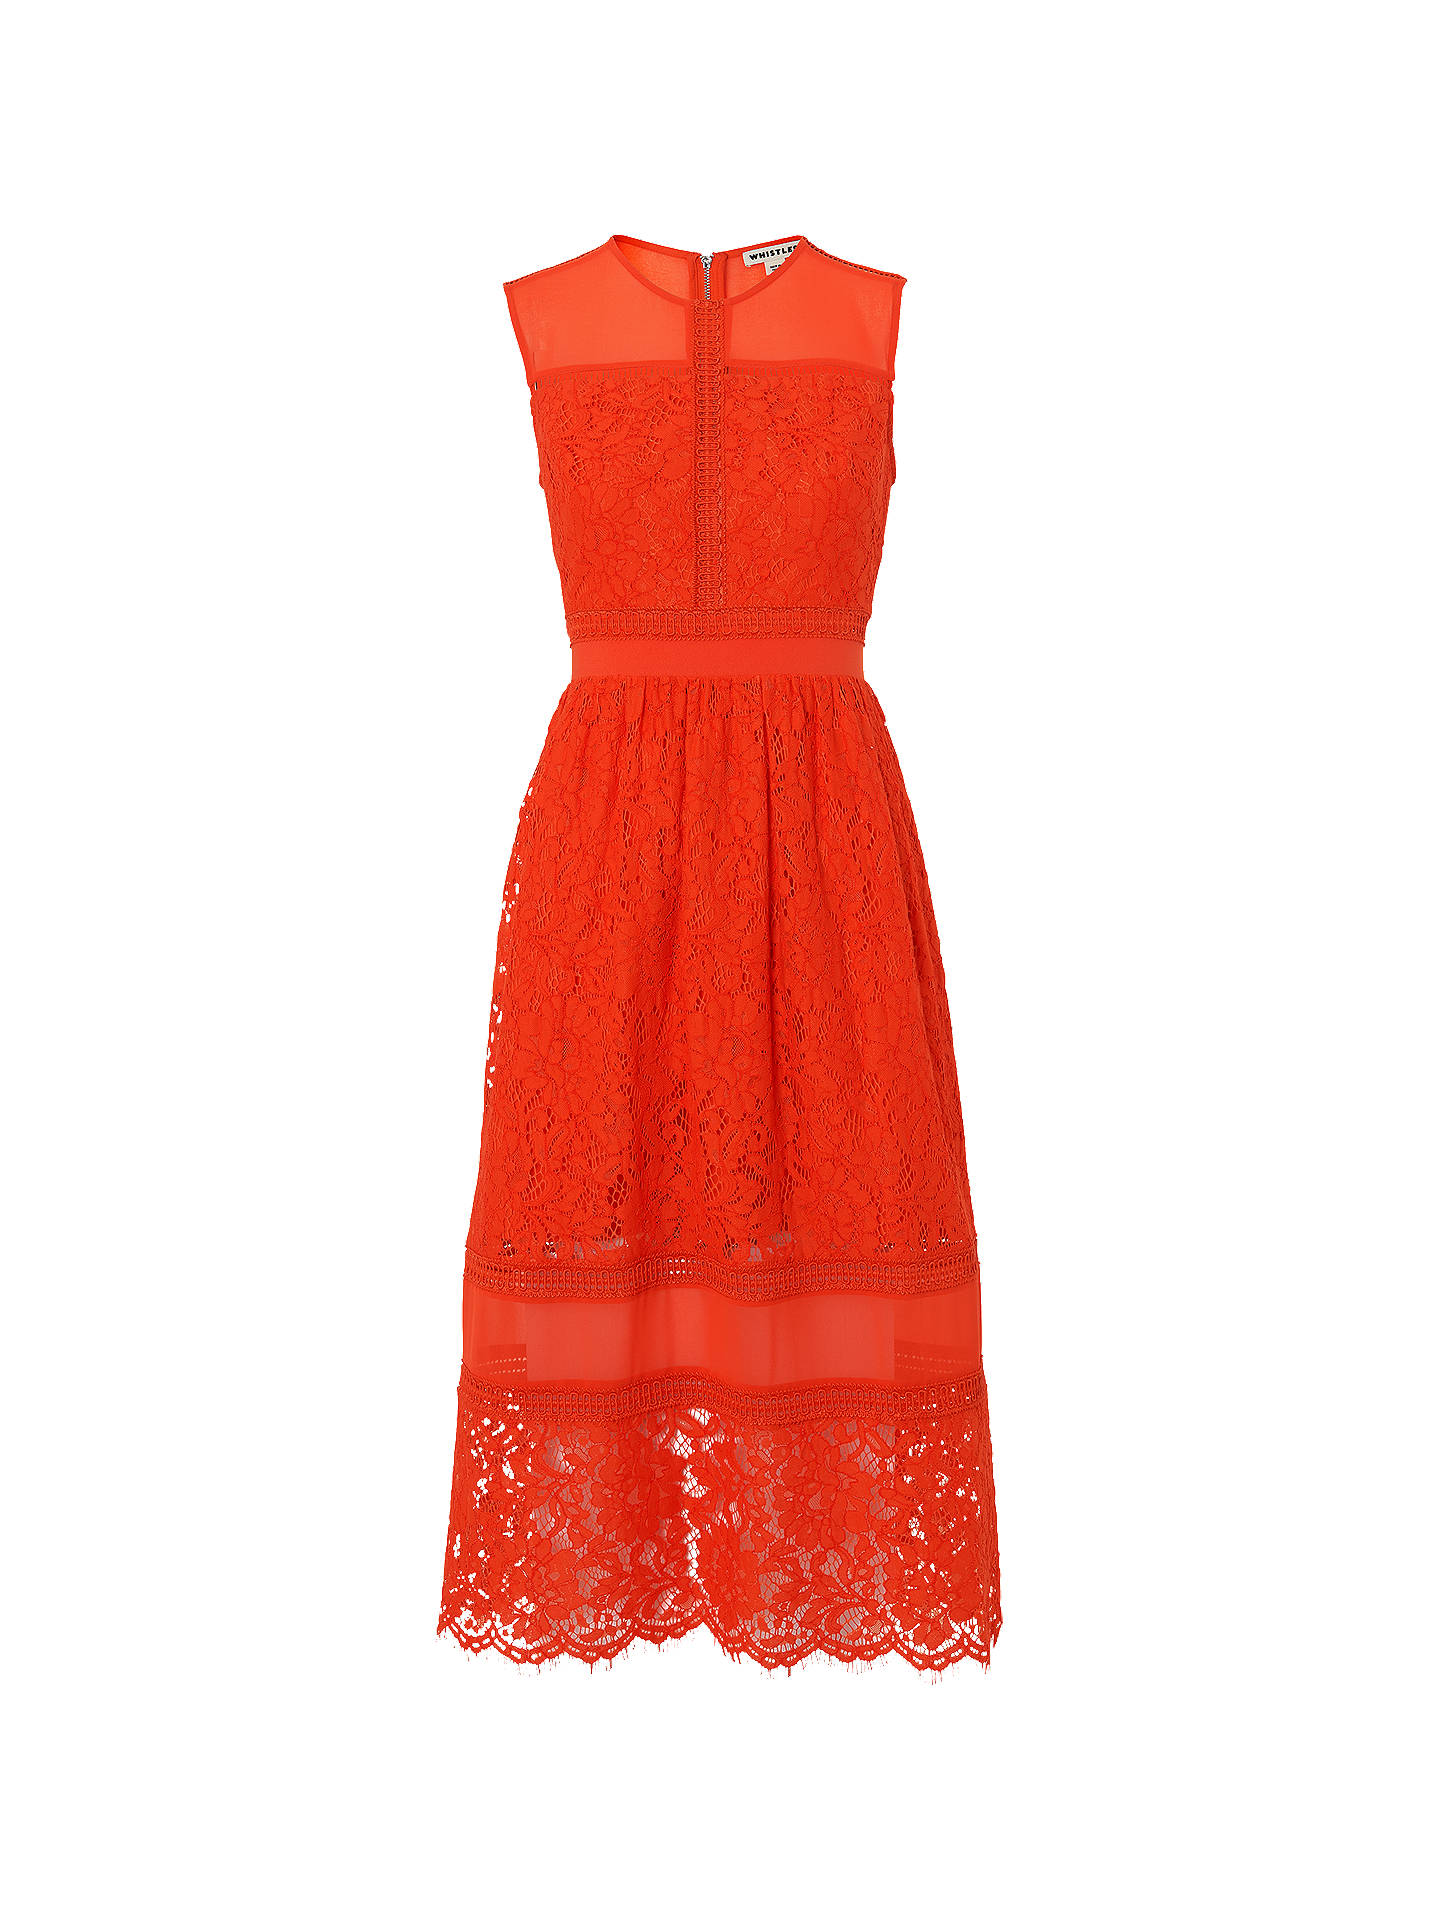 de972922 Buy Whistles Amelia Lace Dress, Orange, 6 Online at johnlewis.com ...